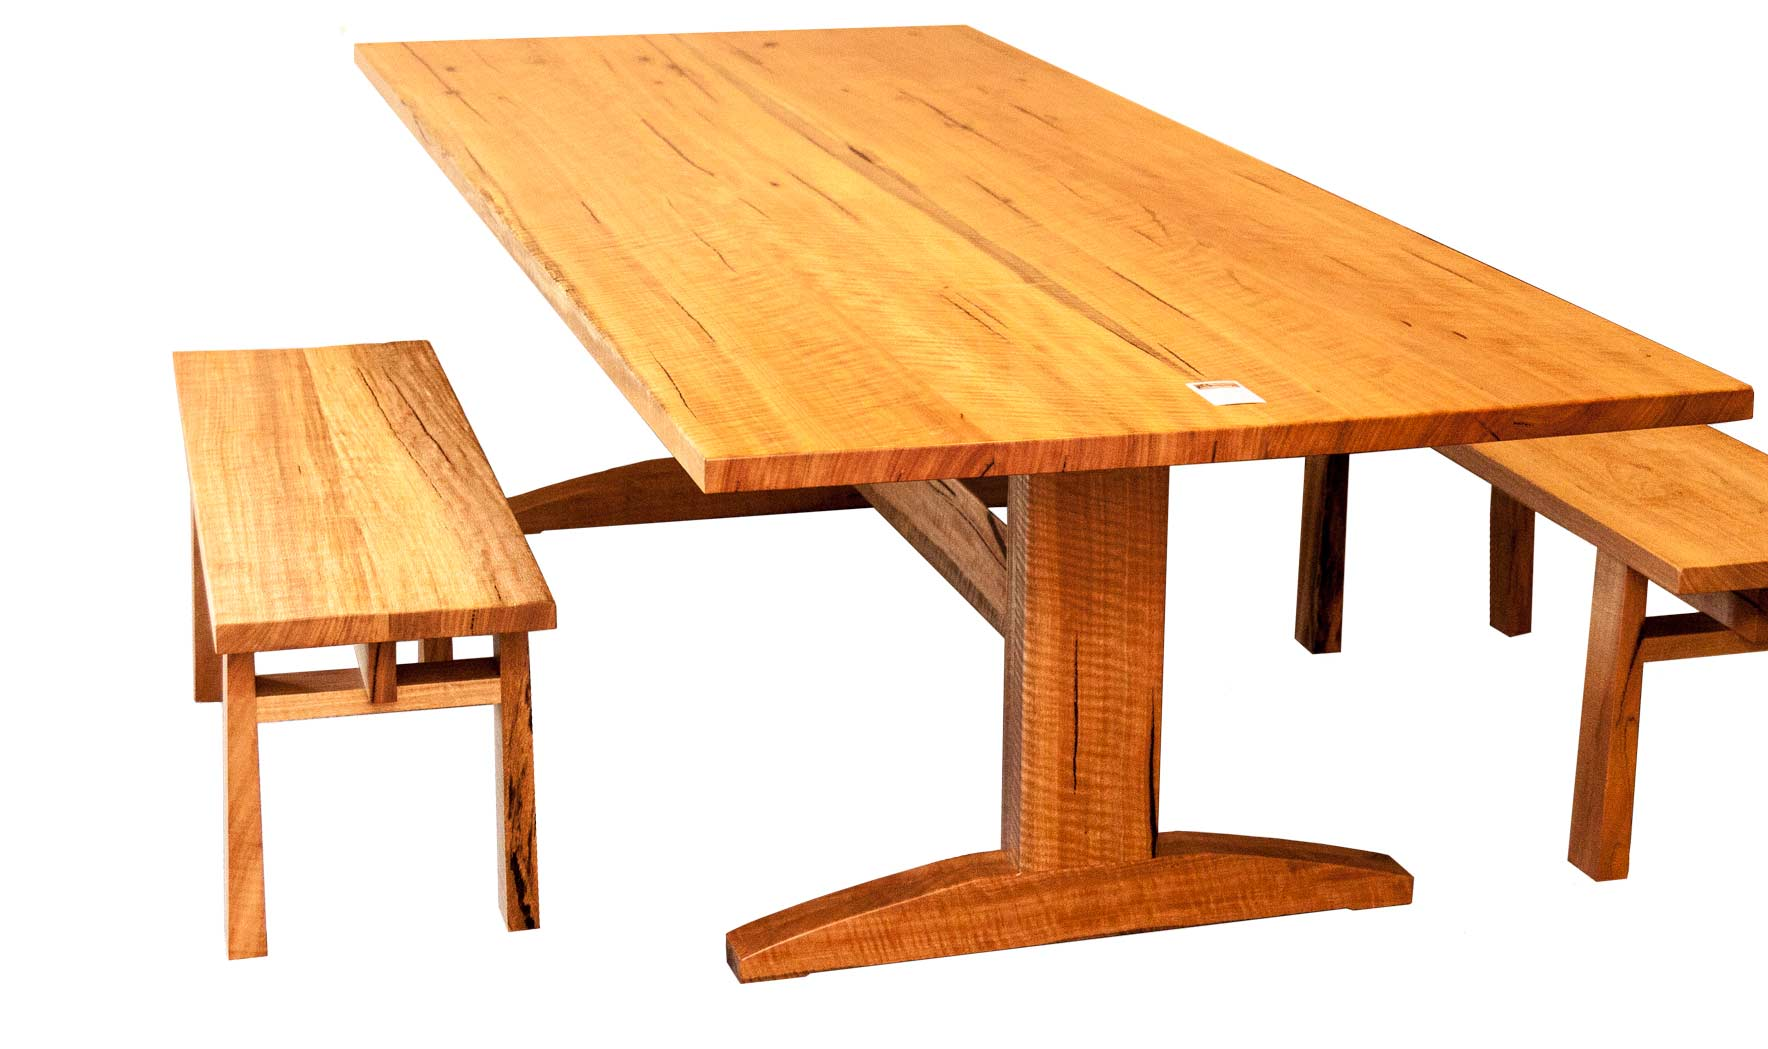 Marri Dining Table Margaret River Cowaramup Busselton Perth